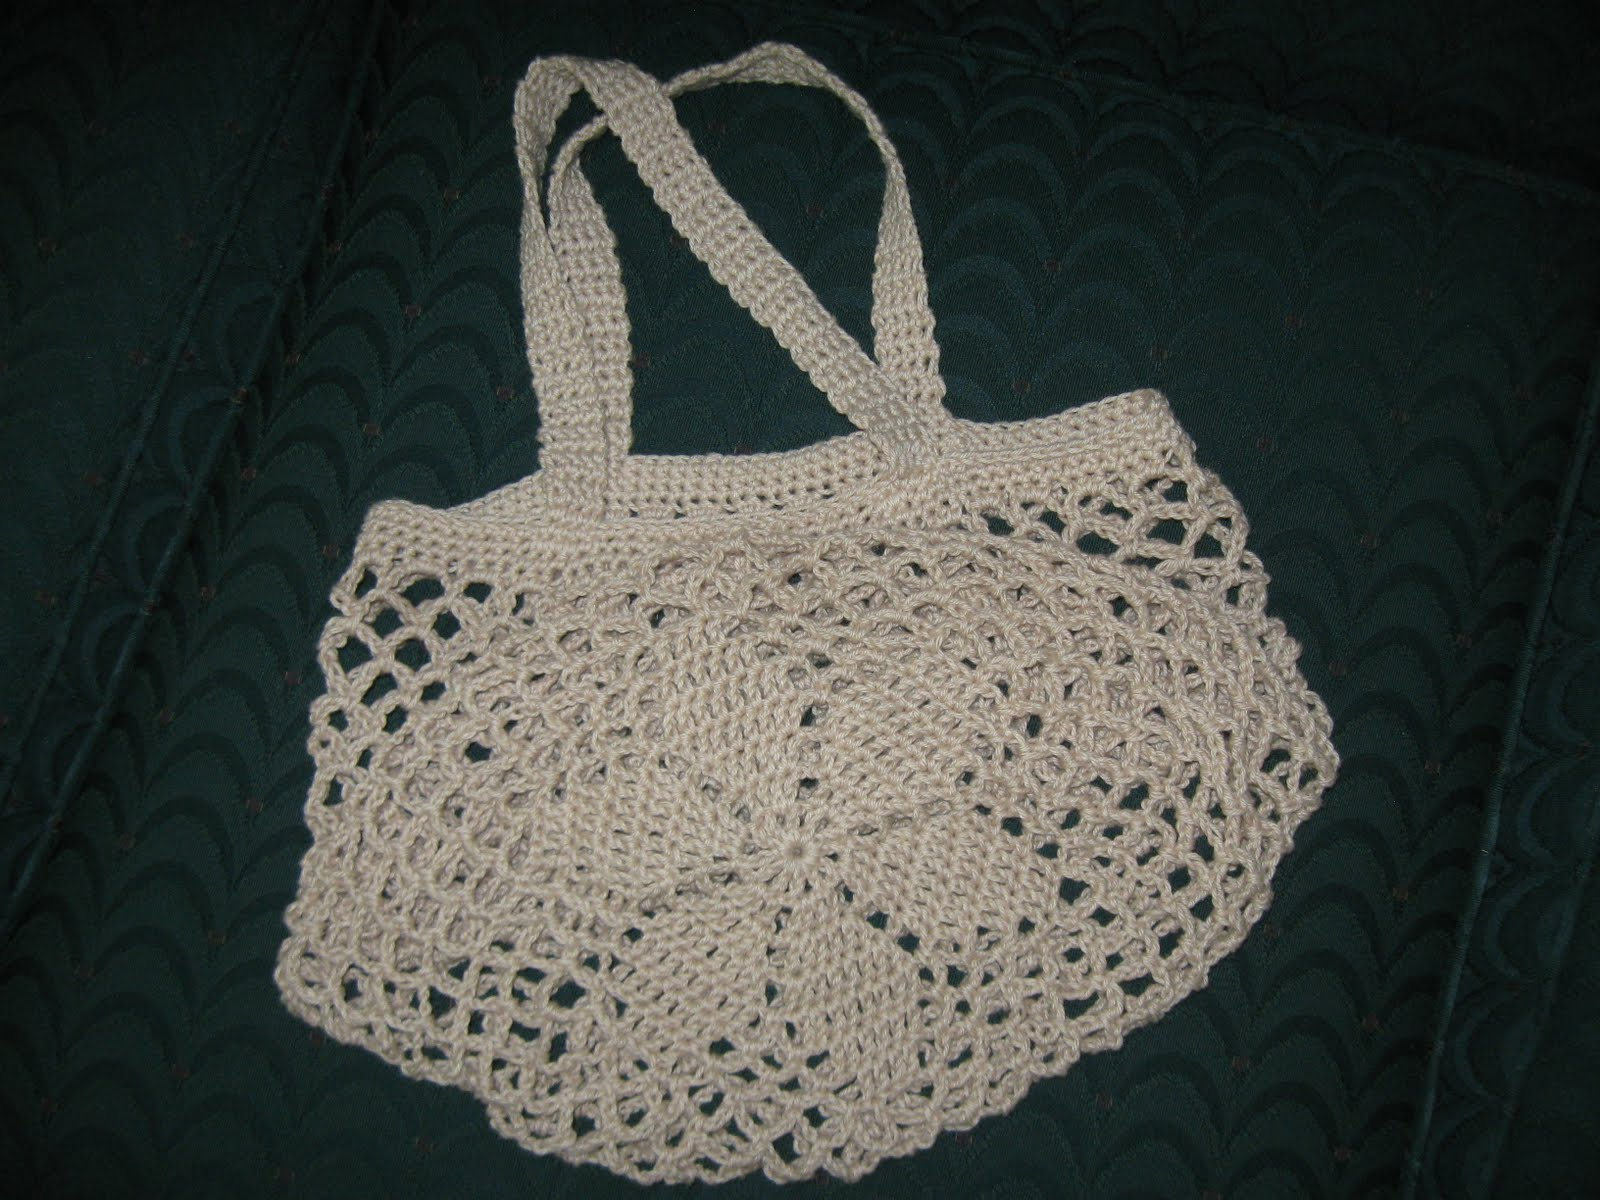 Knitting Pattern For A String Bag : You *can* knit with a lightsaber!: Crochet Flower Motif ...